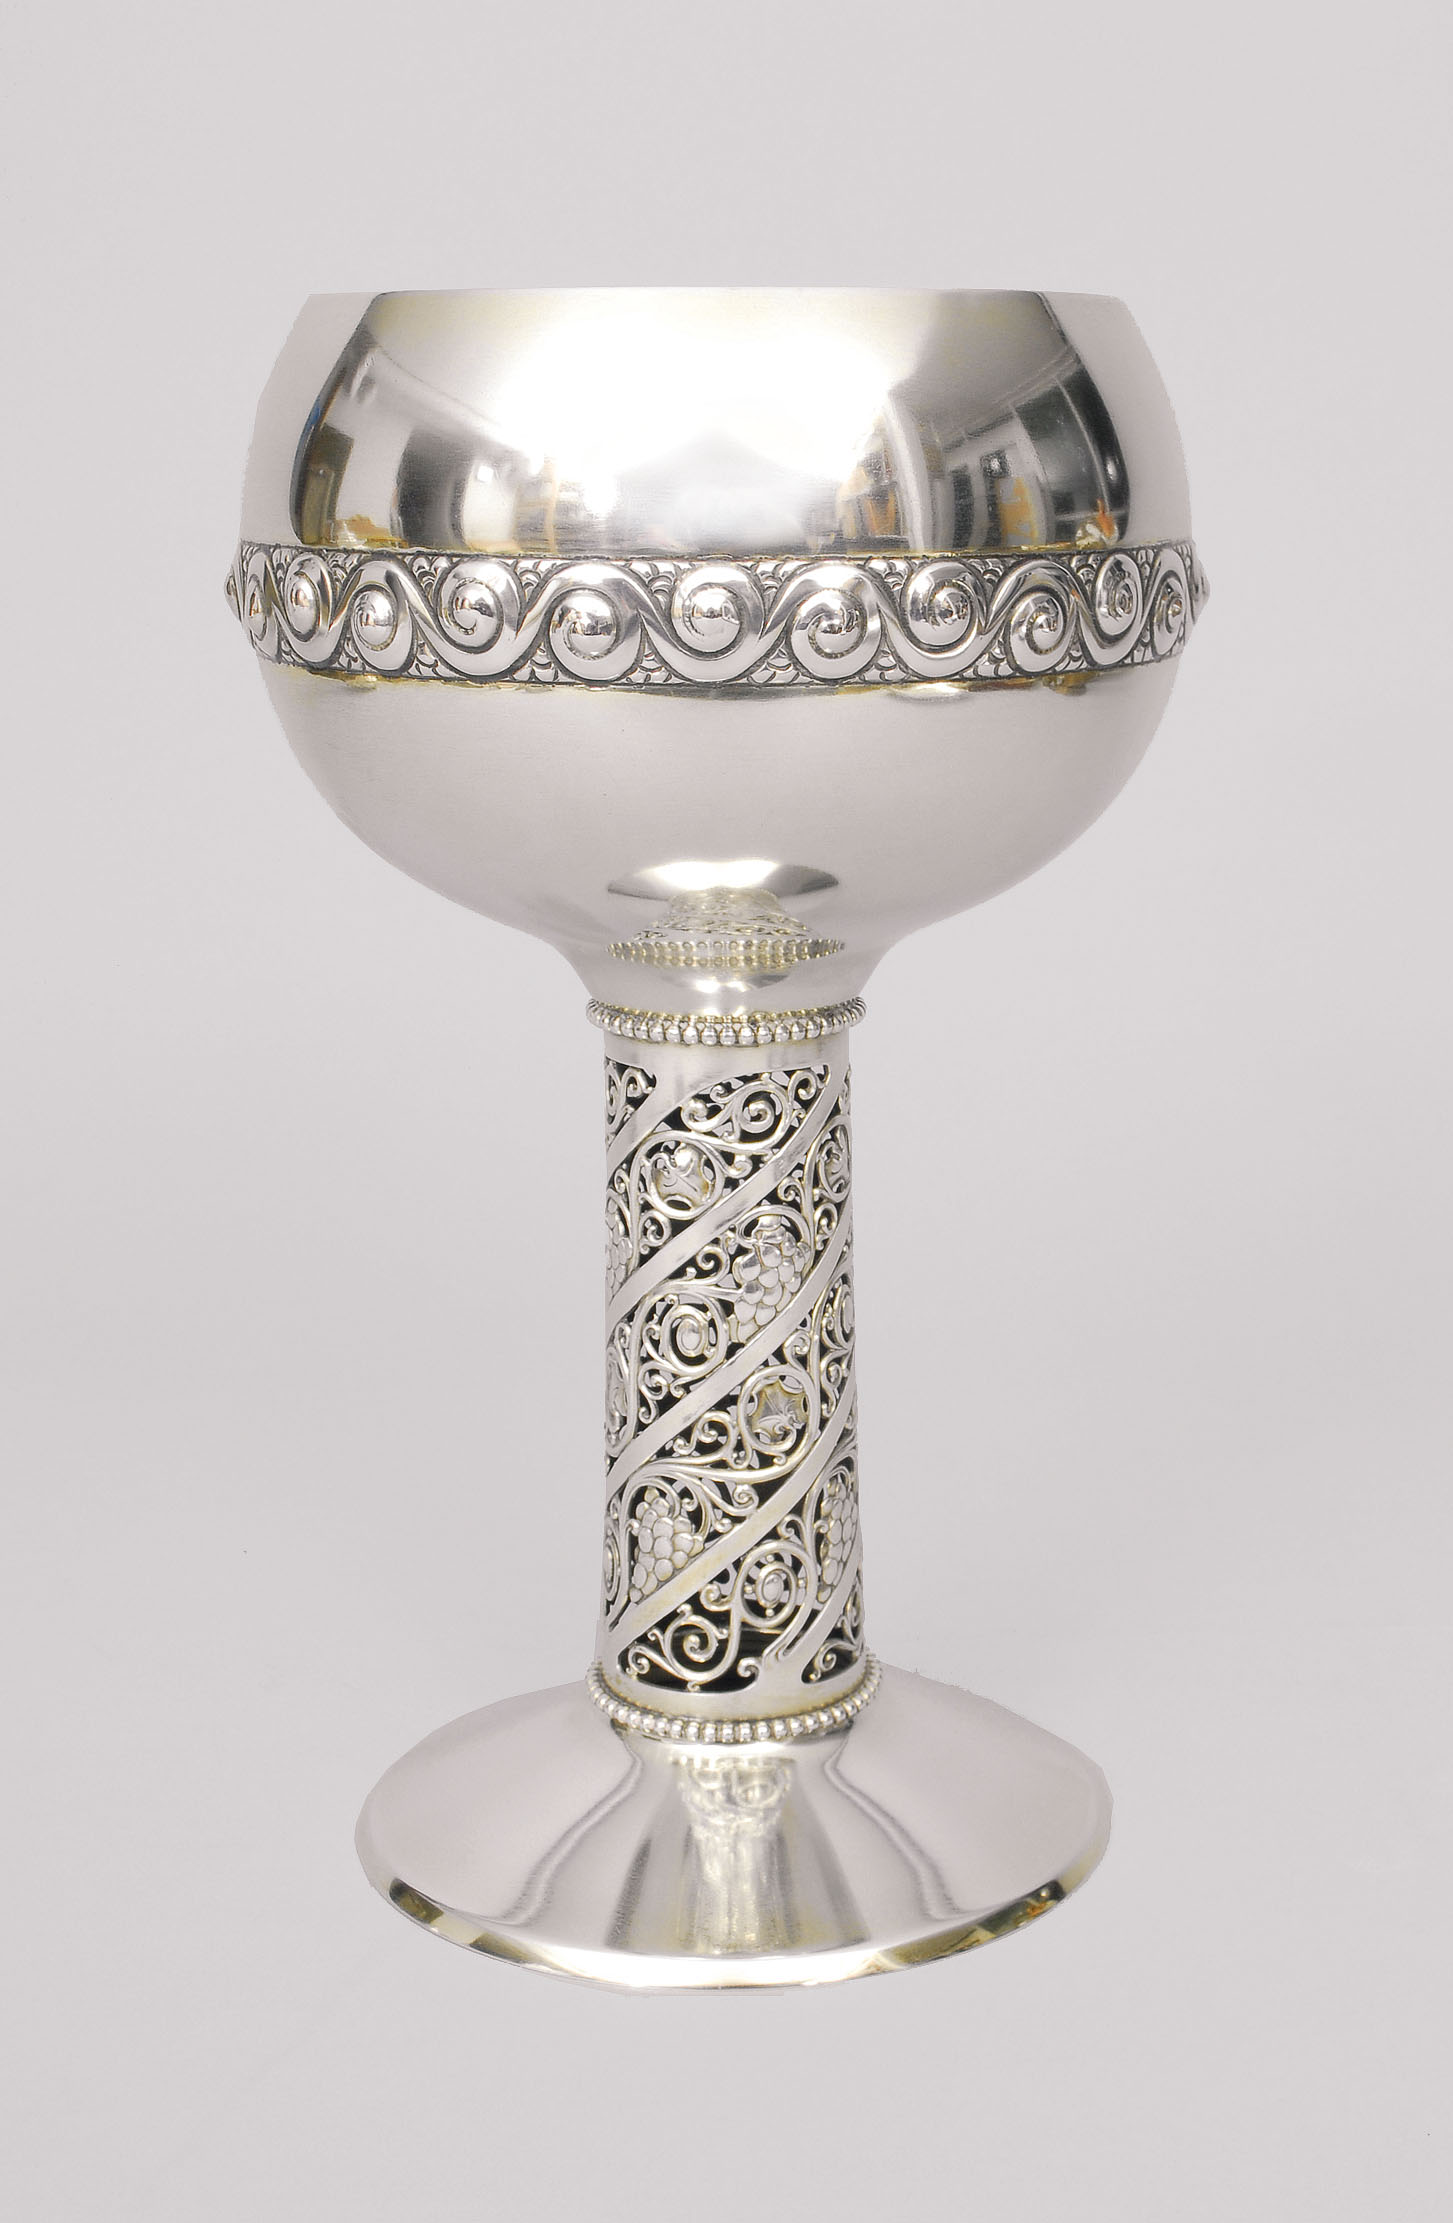 An Art-Nouveau goblet with ornaments of grapes